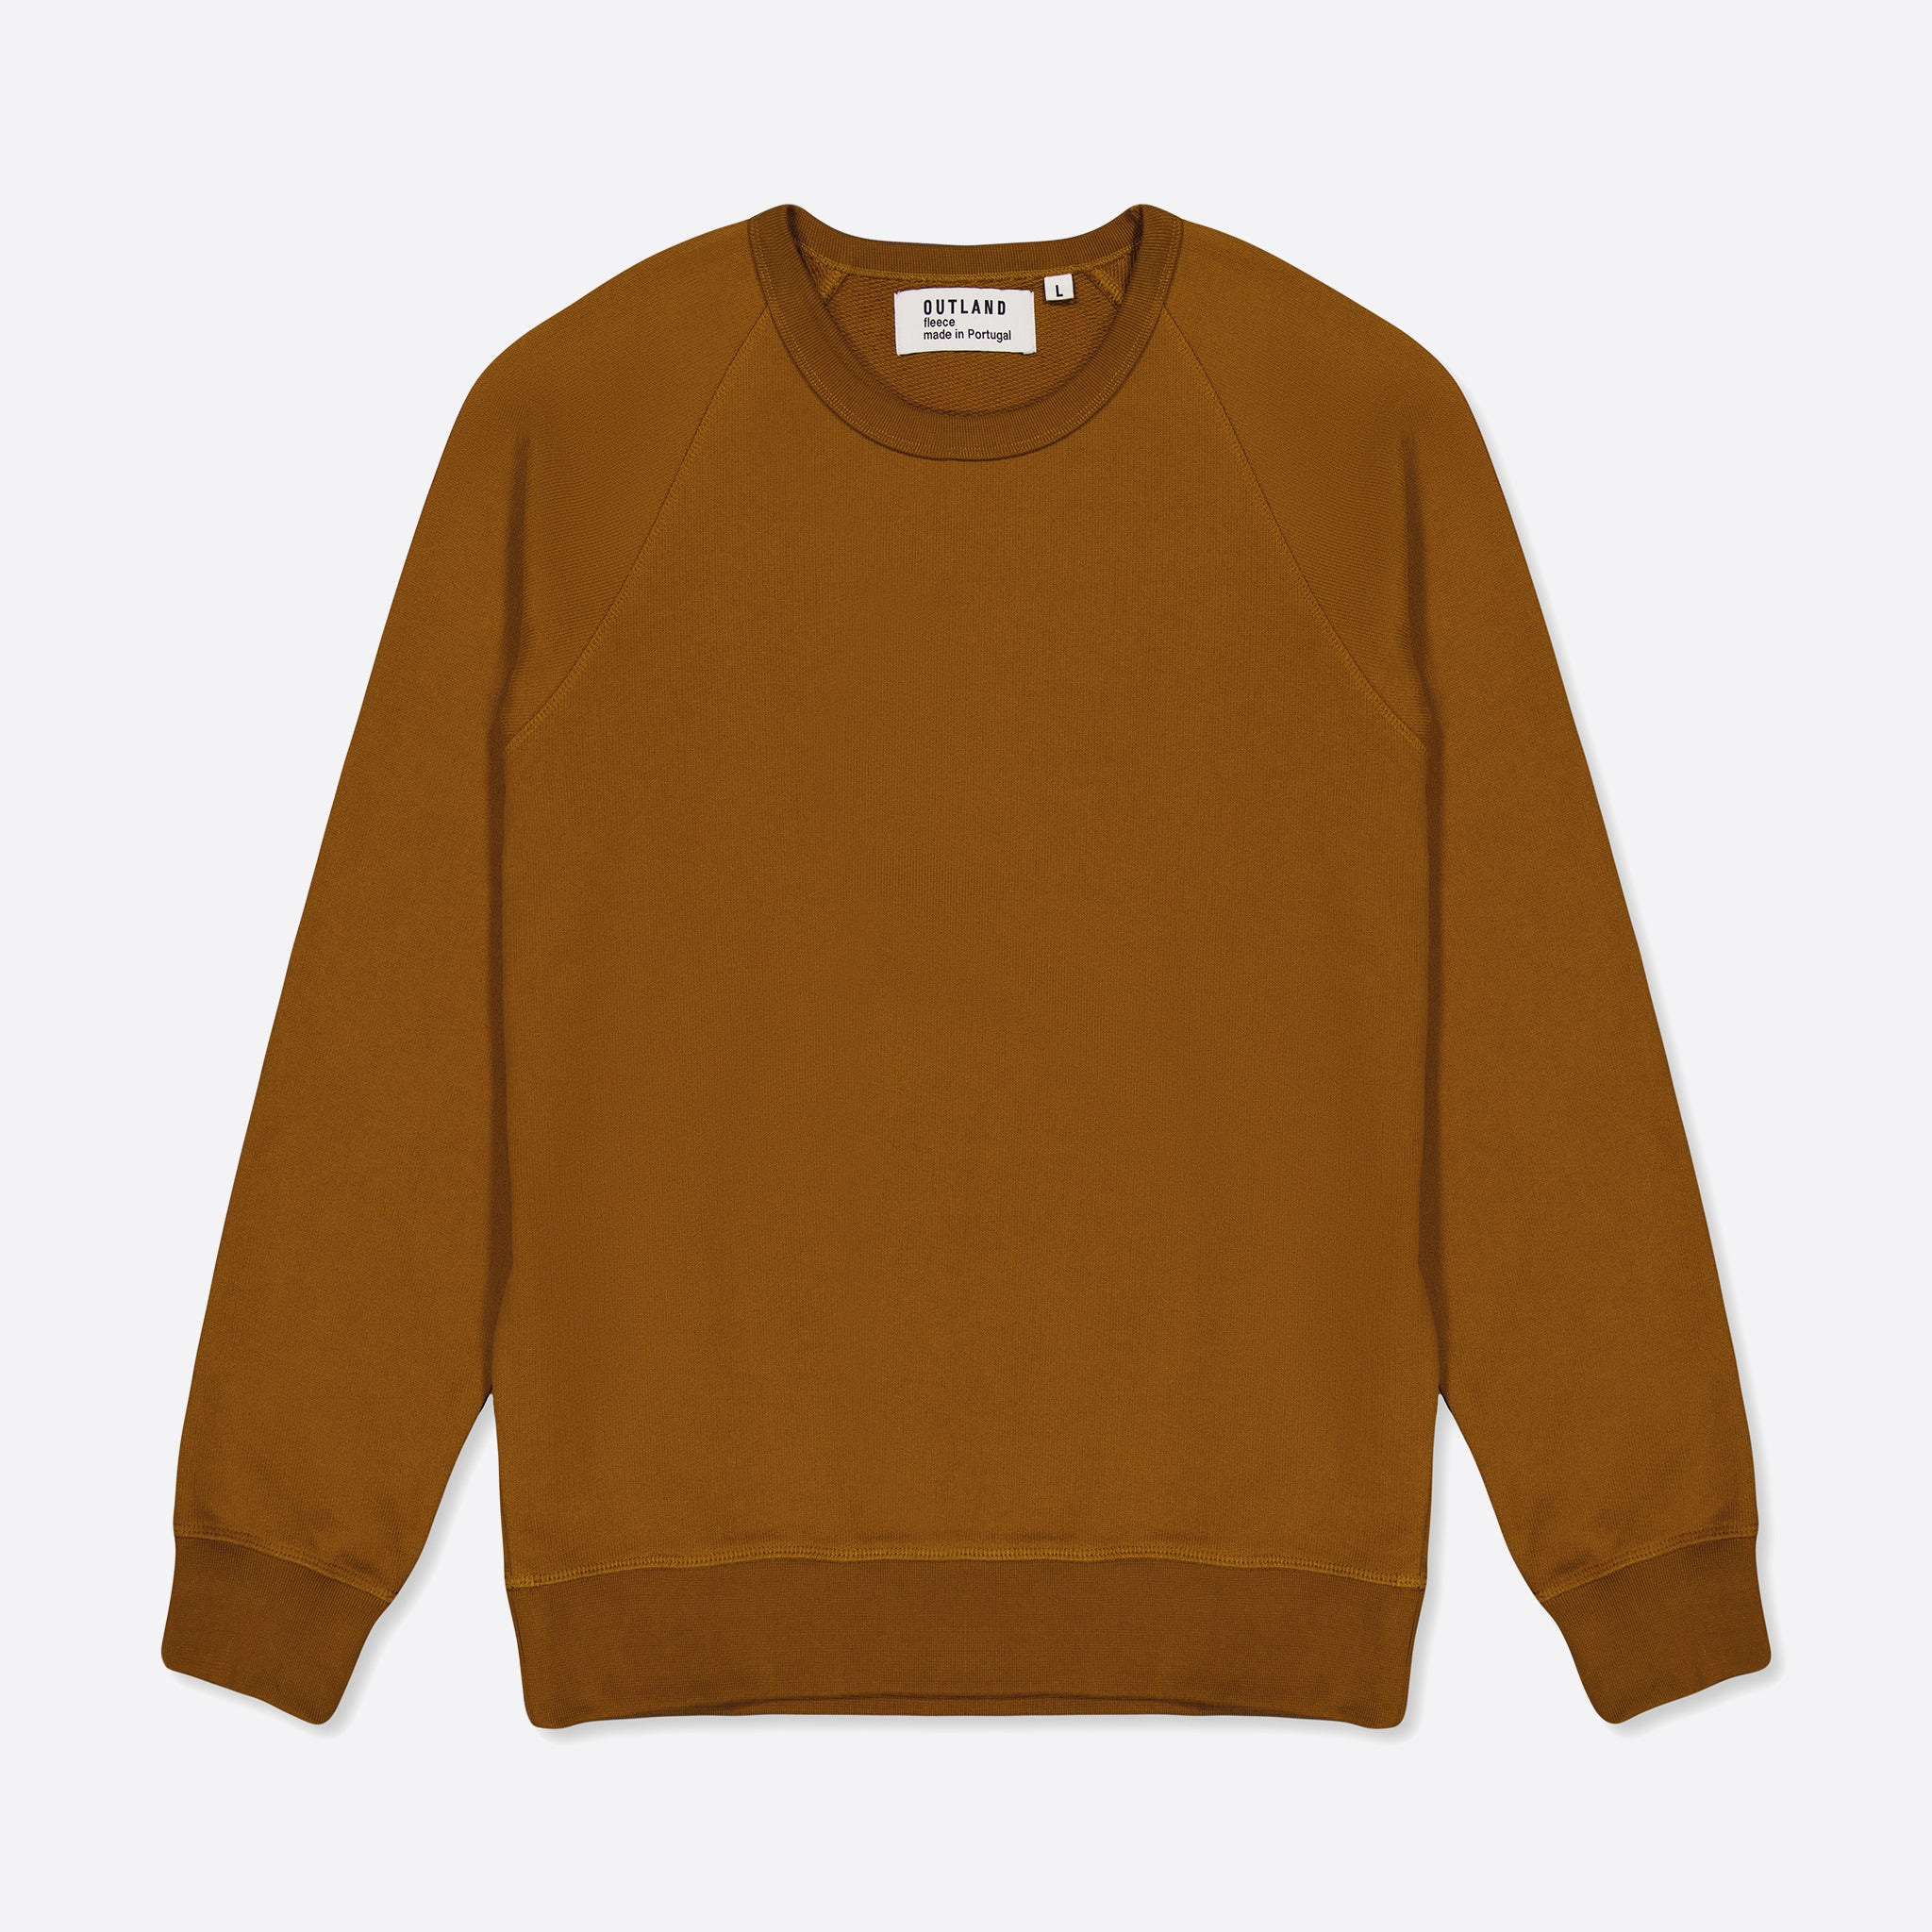 OUTLAND Basic Sweater in Tobacco